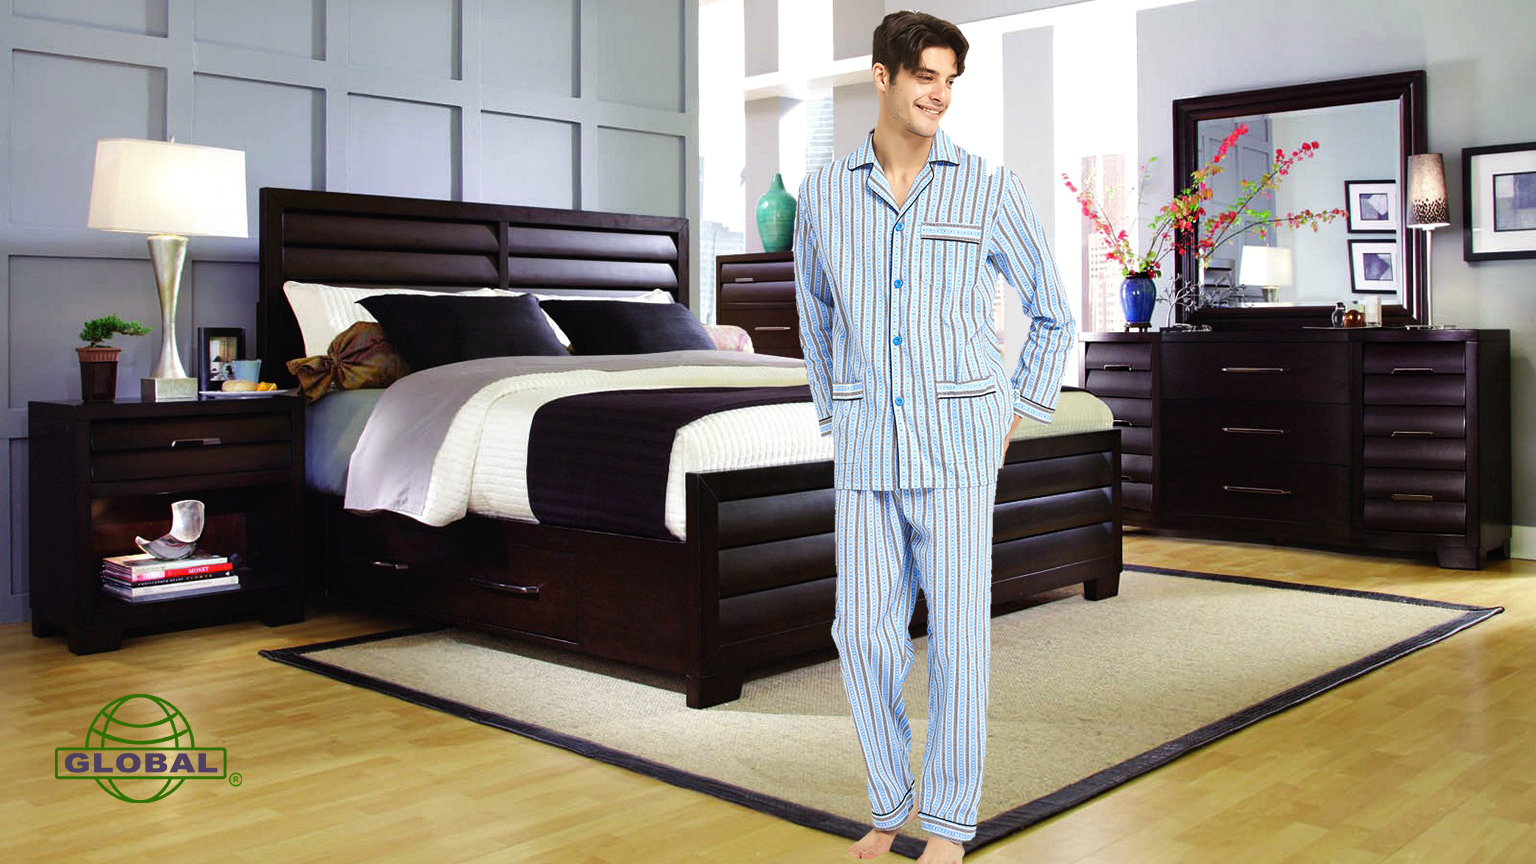 pijamas de hombre , mens thin cotton pajamas set as gift for dad, father, husband